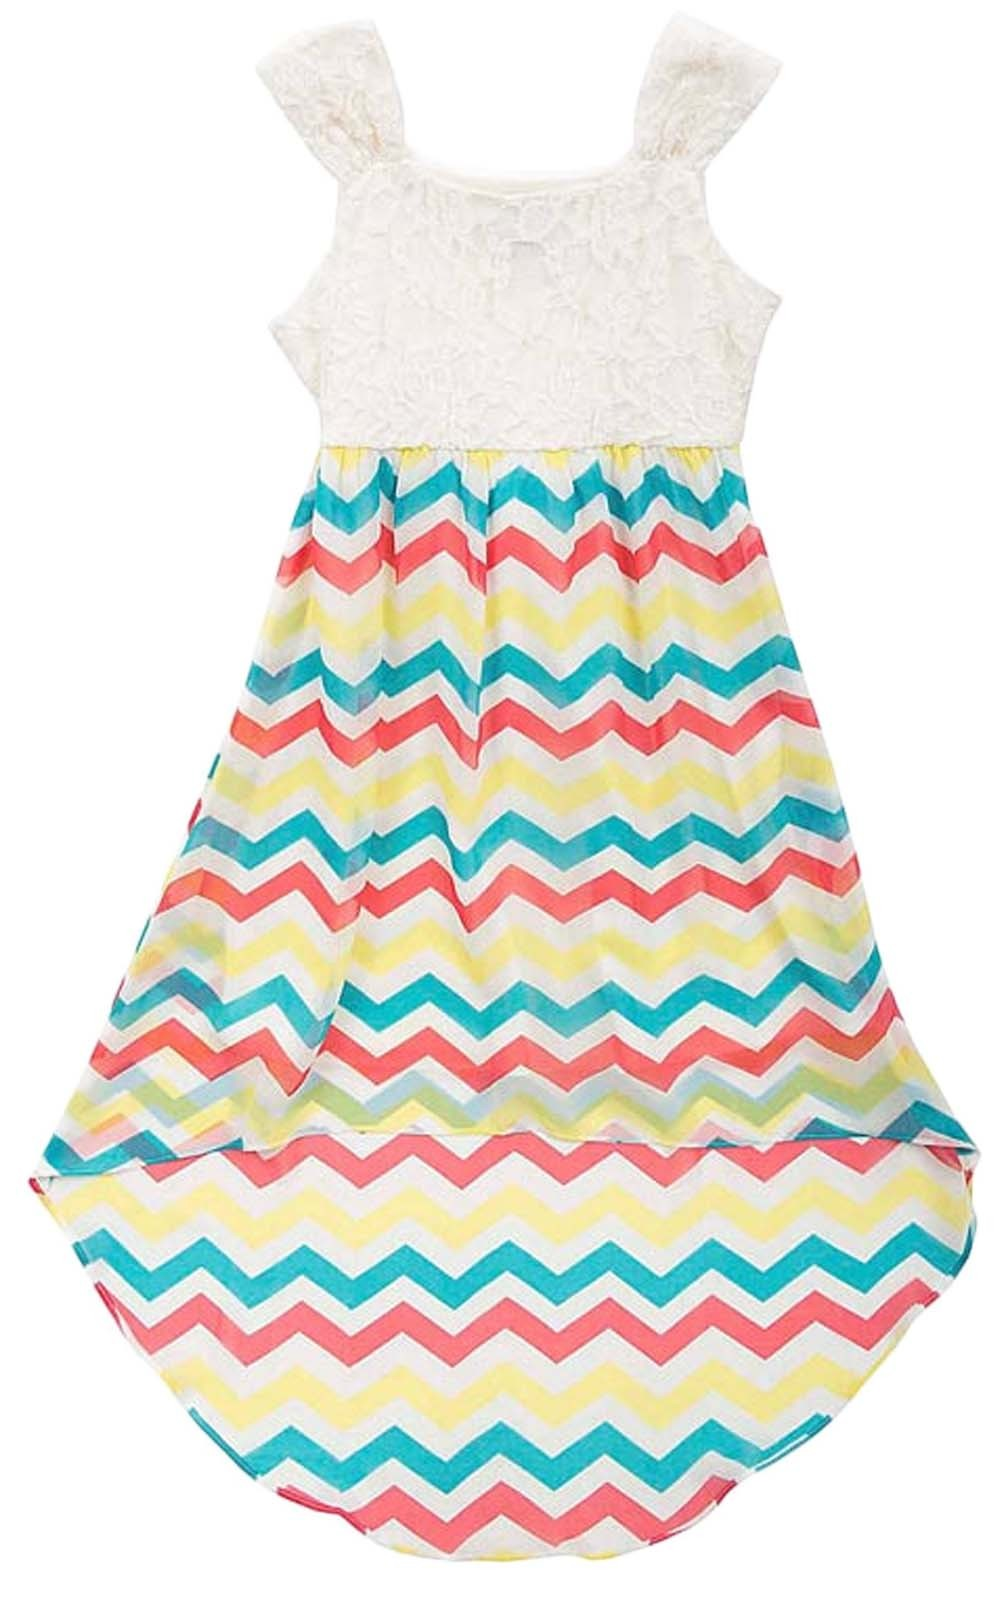 Primary image for Big Girls Tween 7-16 Lace to Chevron Stripe Chiffon High Low Maxi Dress